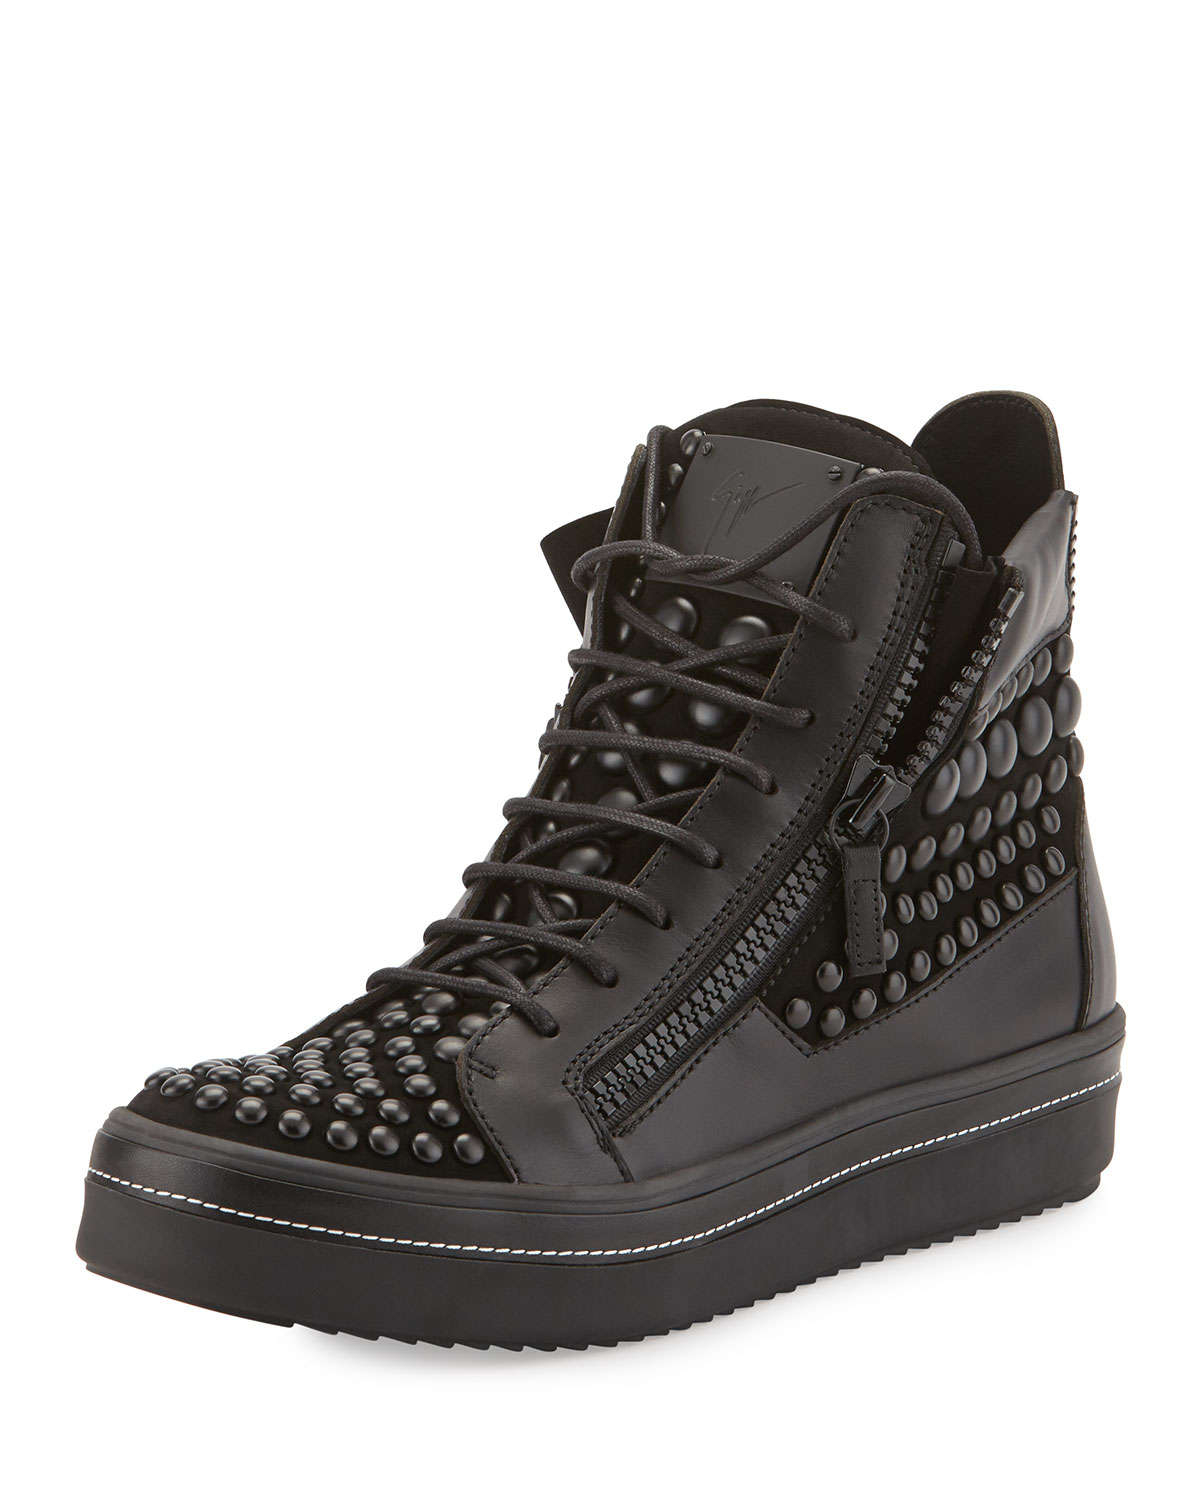 High Top Sneakers: Shop Brands up to 70% | Stylight10,+ followers on Twitter.